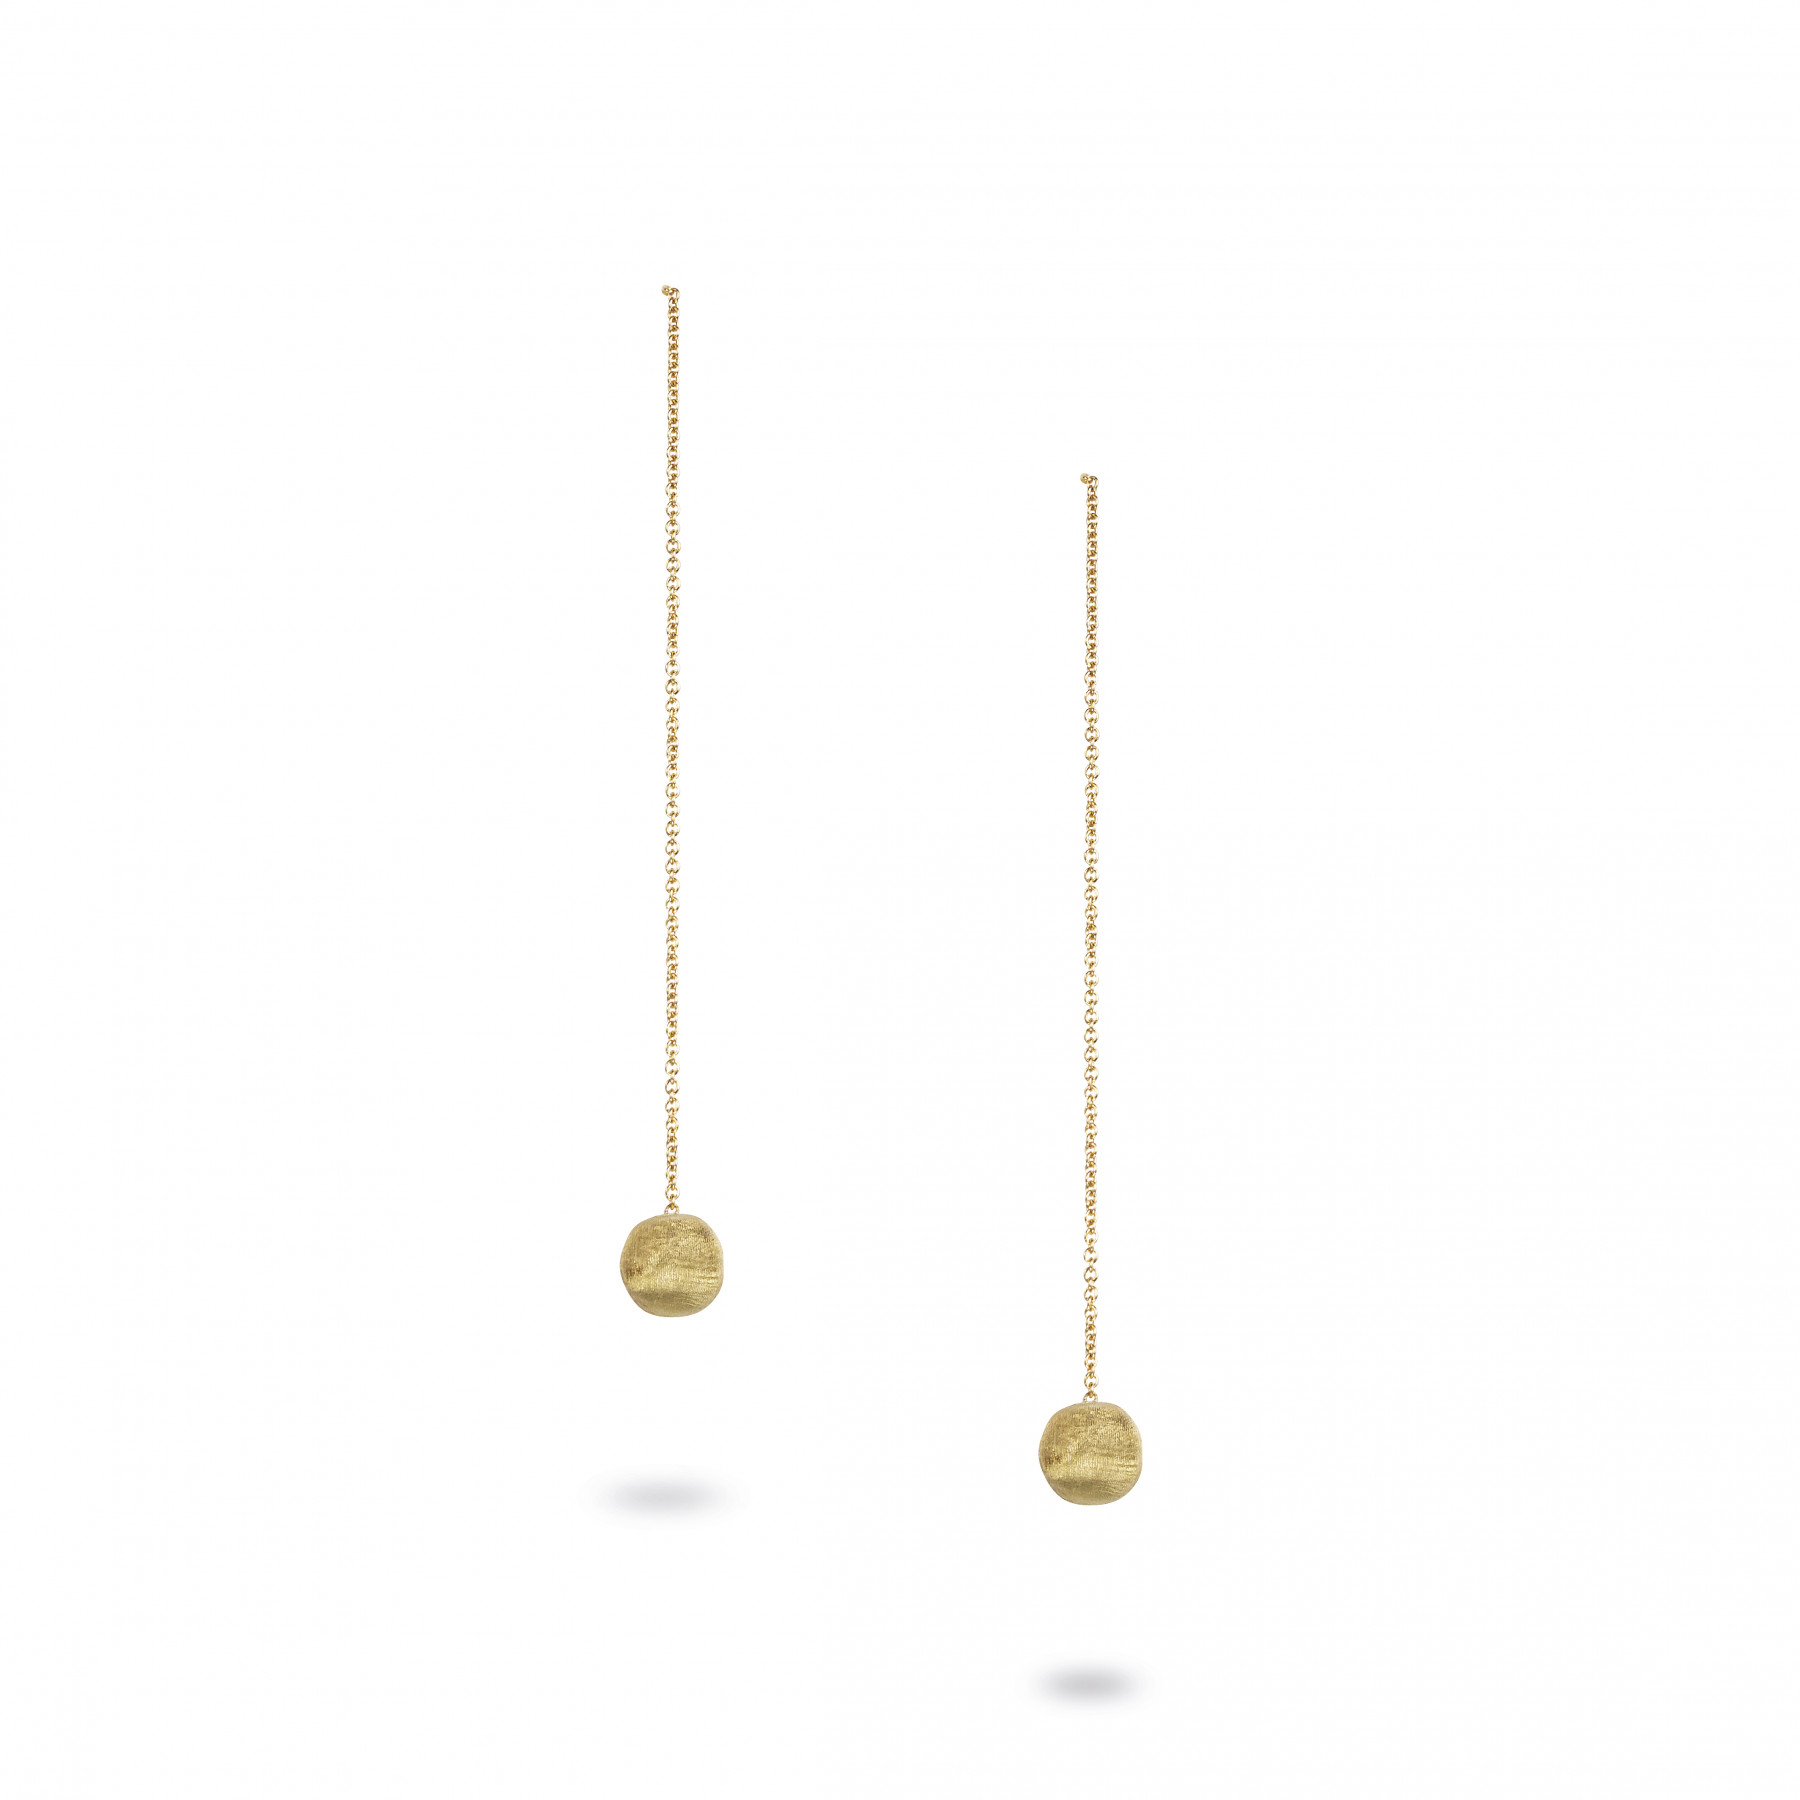 Marco Bicego Yellow Gold Delicate Drop Bead Earrings